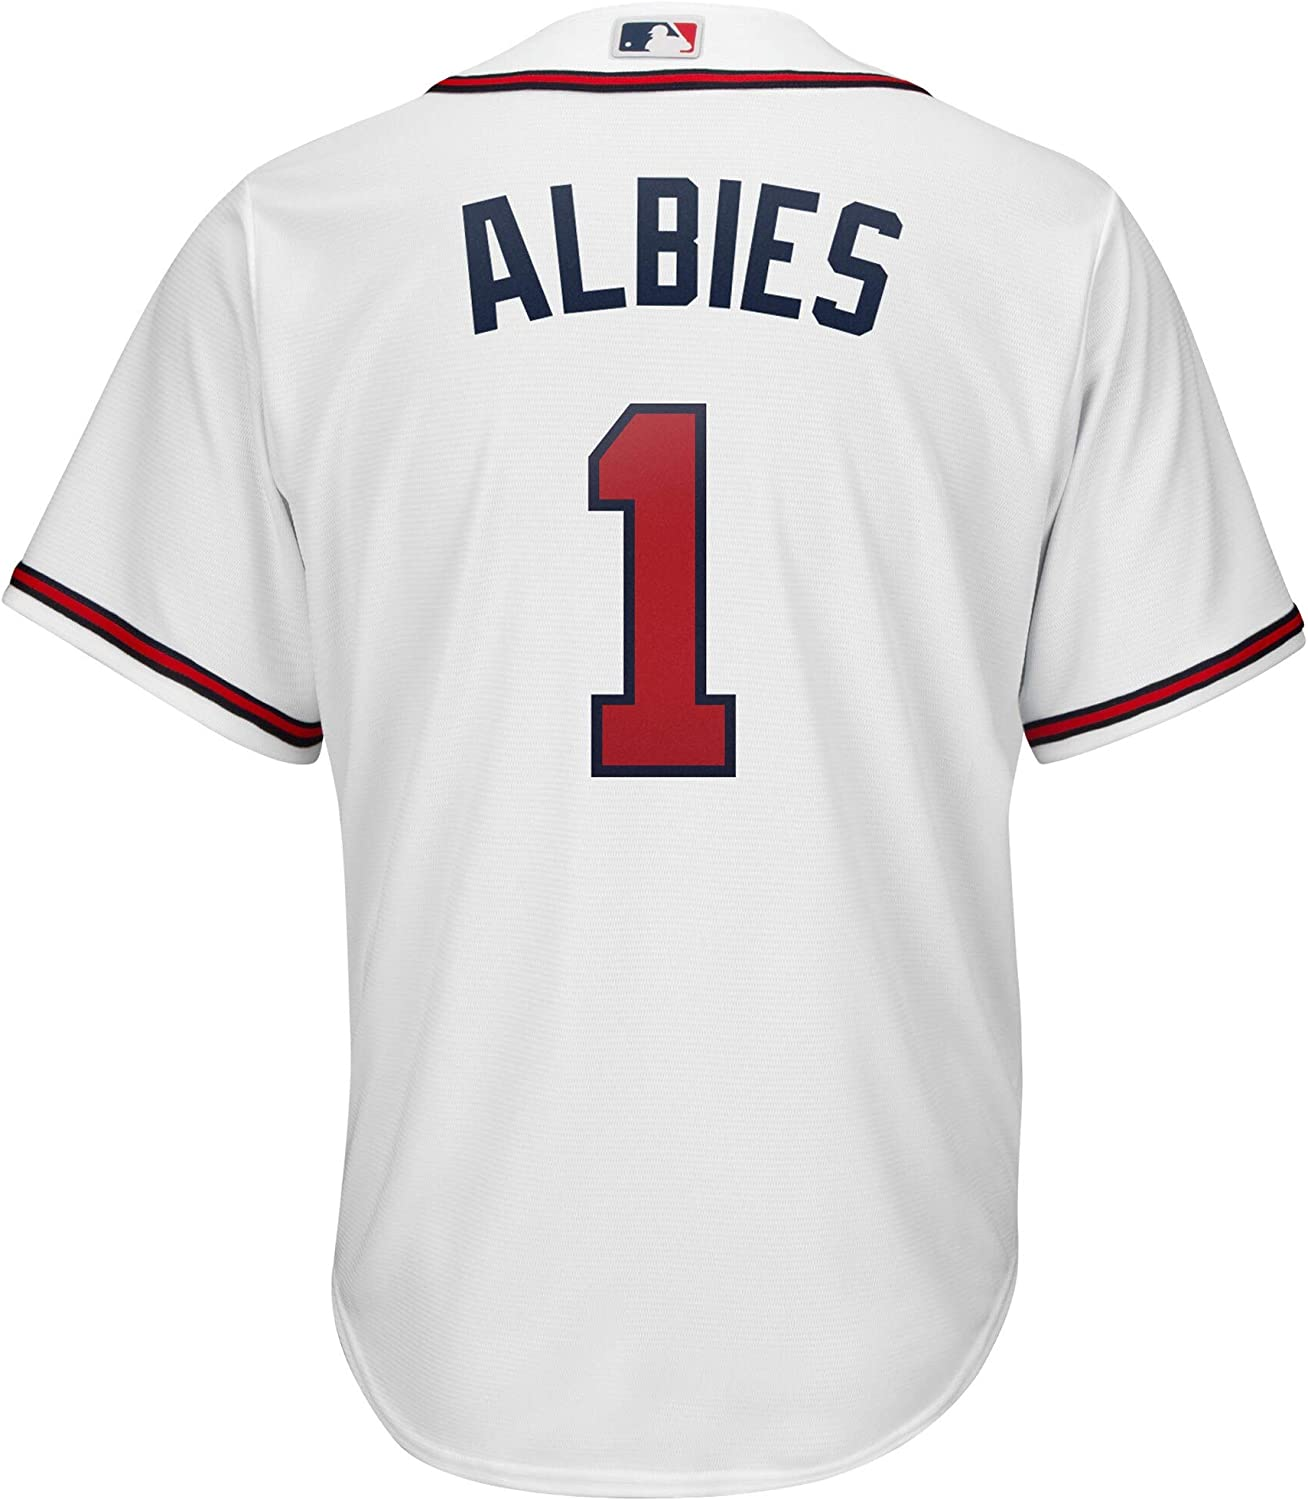 Outerstuff Ozzie Albies Atlanta Braves MLB Boys Youth 8-20 Player Jersey